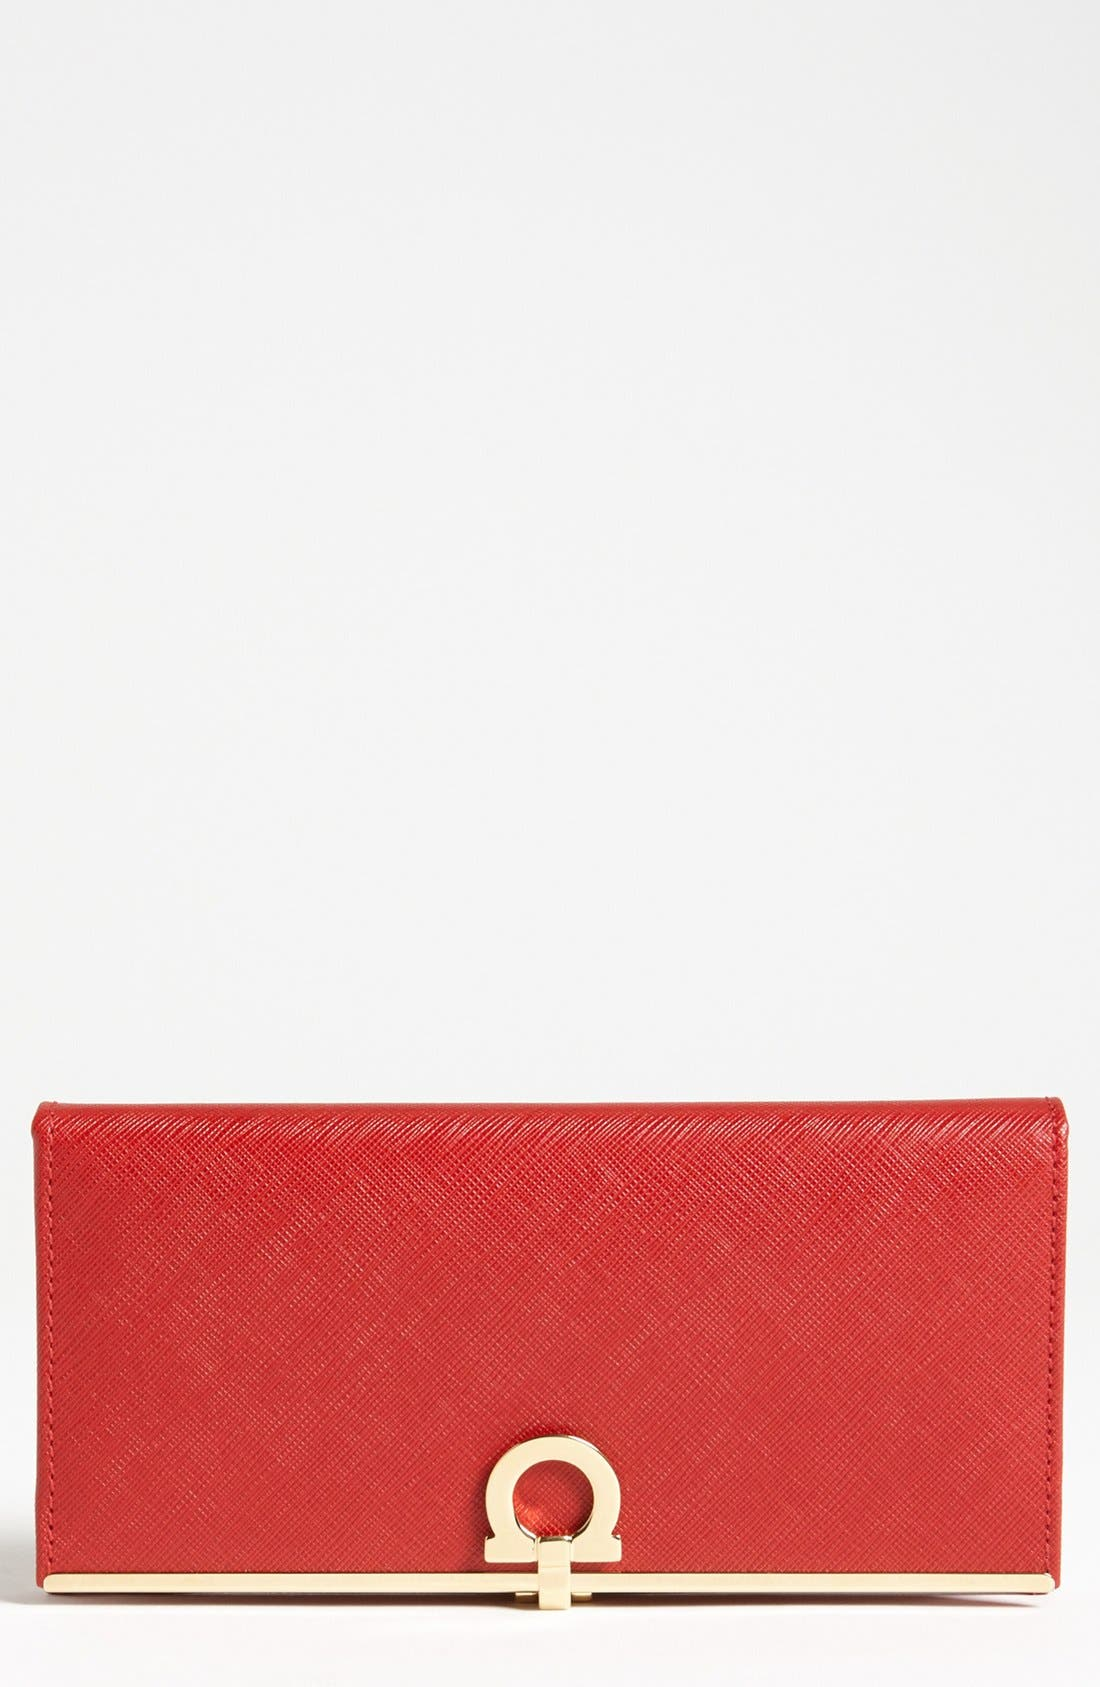 Saffiano Leather Wallet,                             Main thumbnail 1, color,                             Rosso Gold Hrdwr